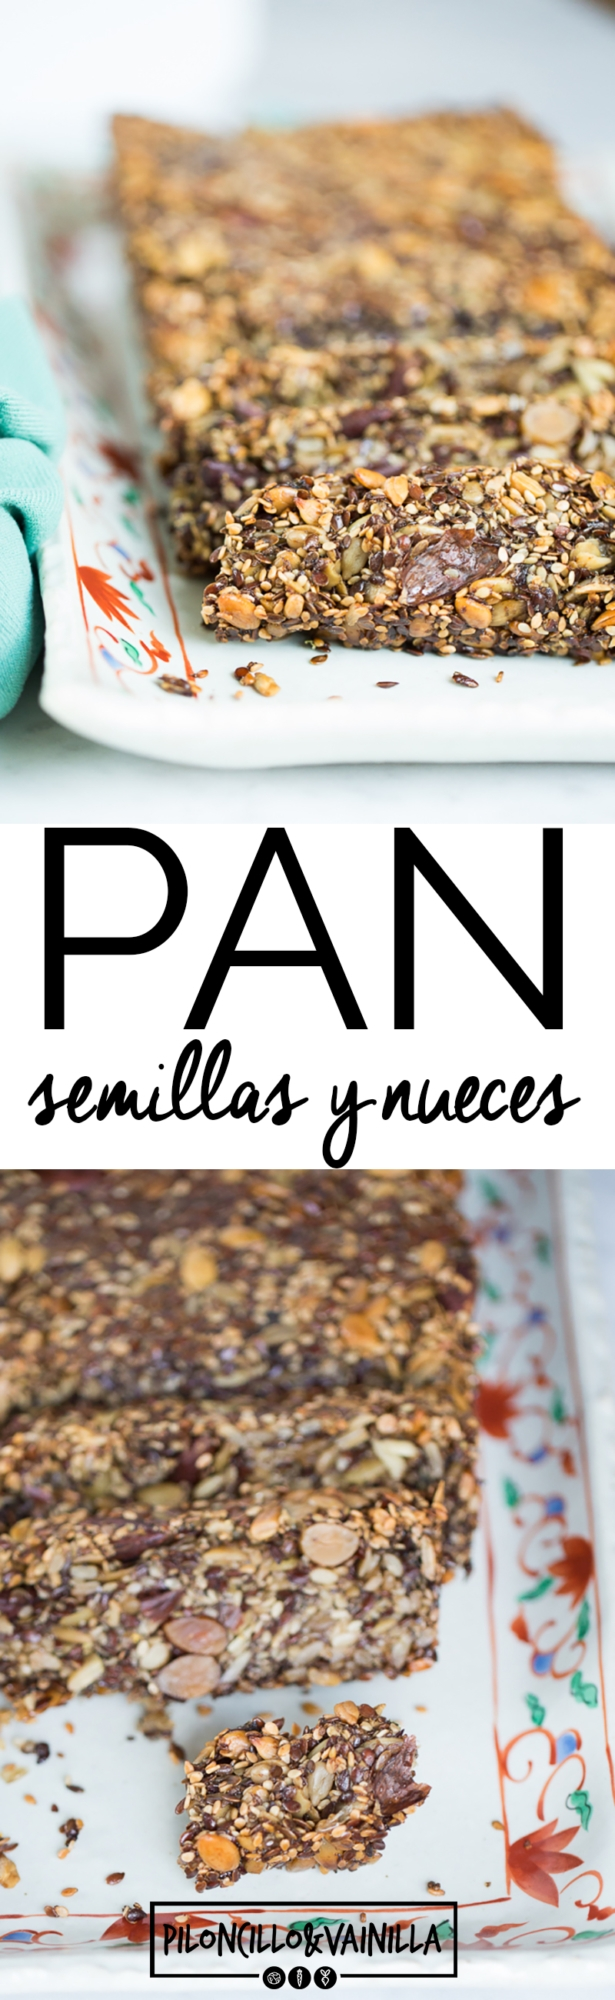 pan de semillas y nueces